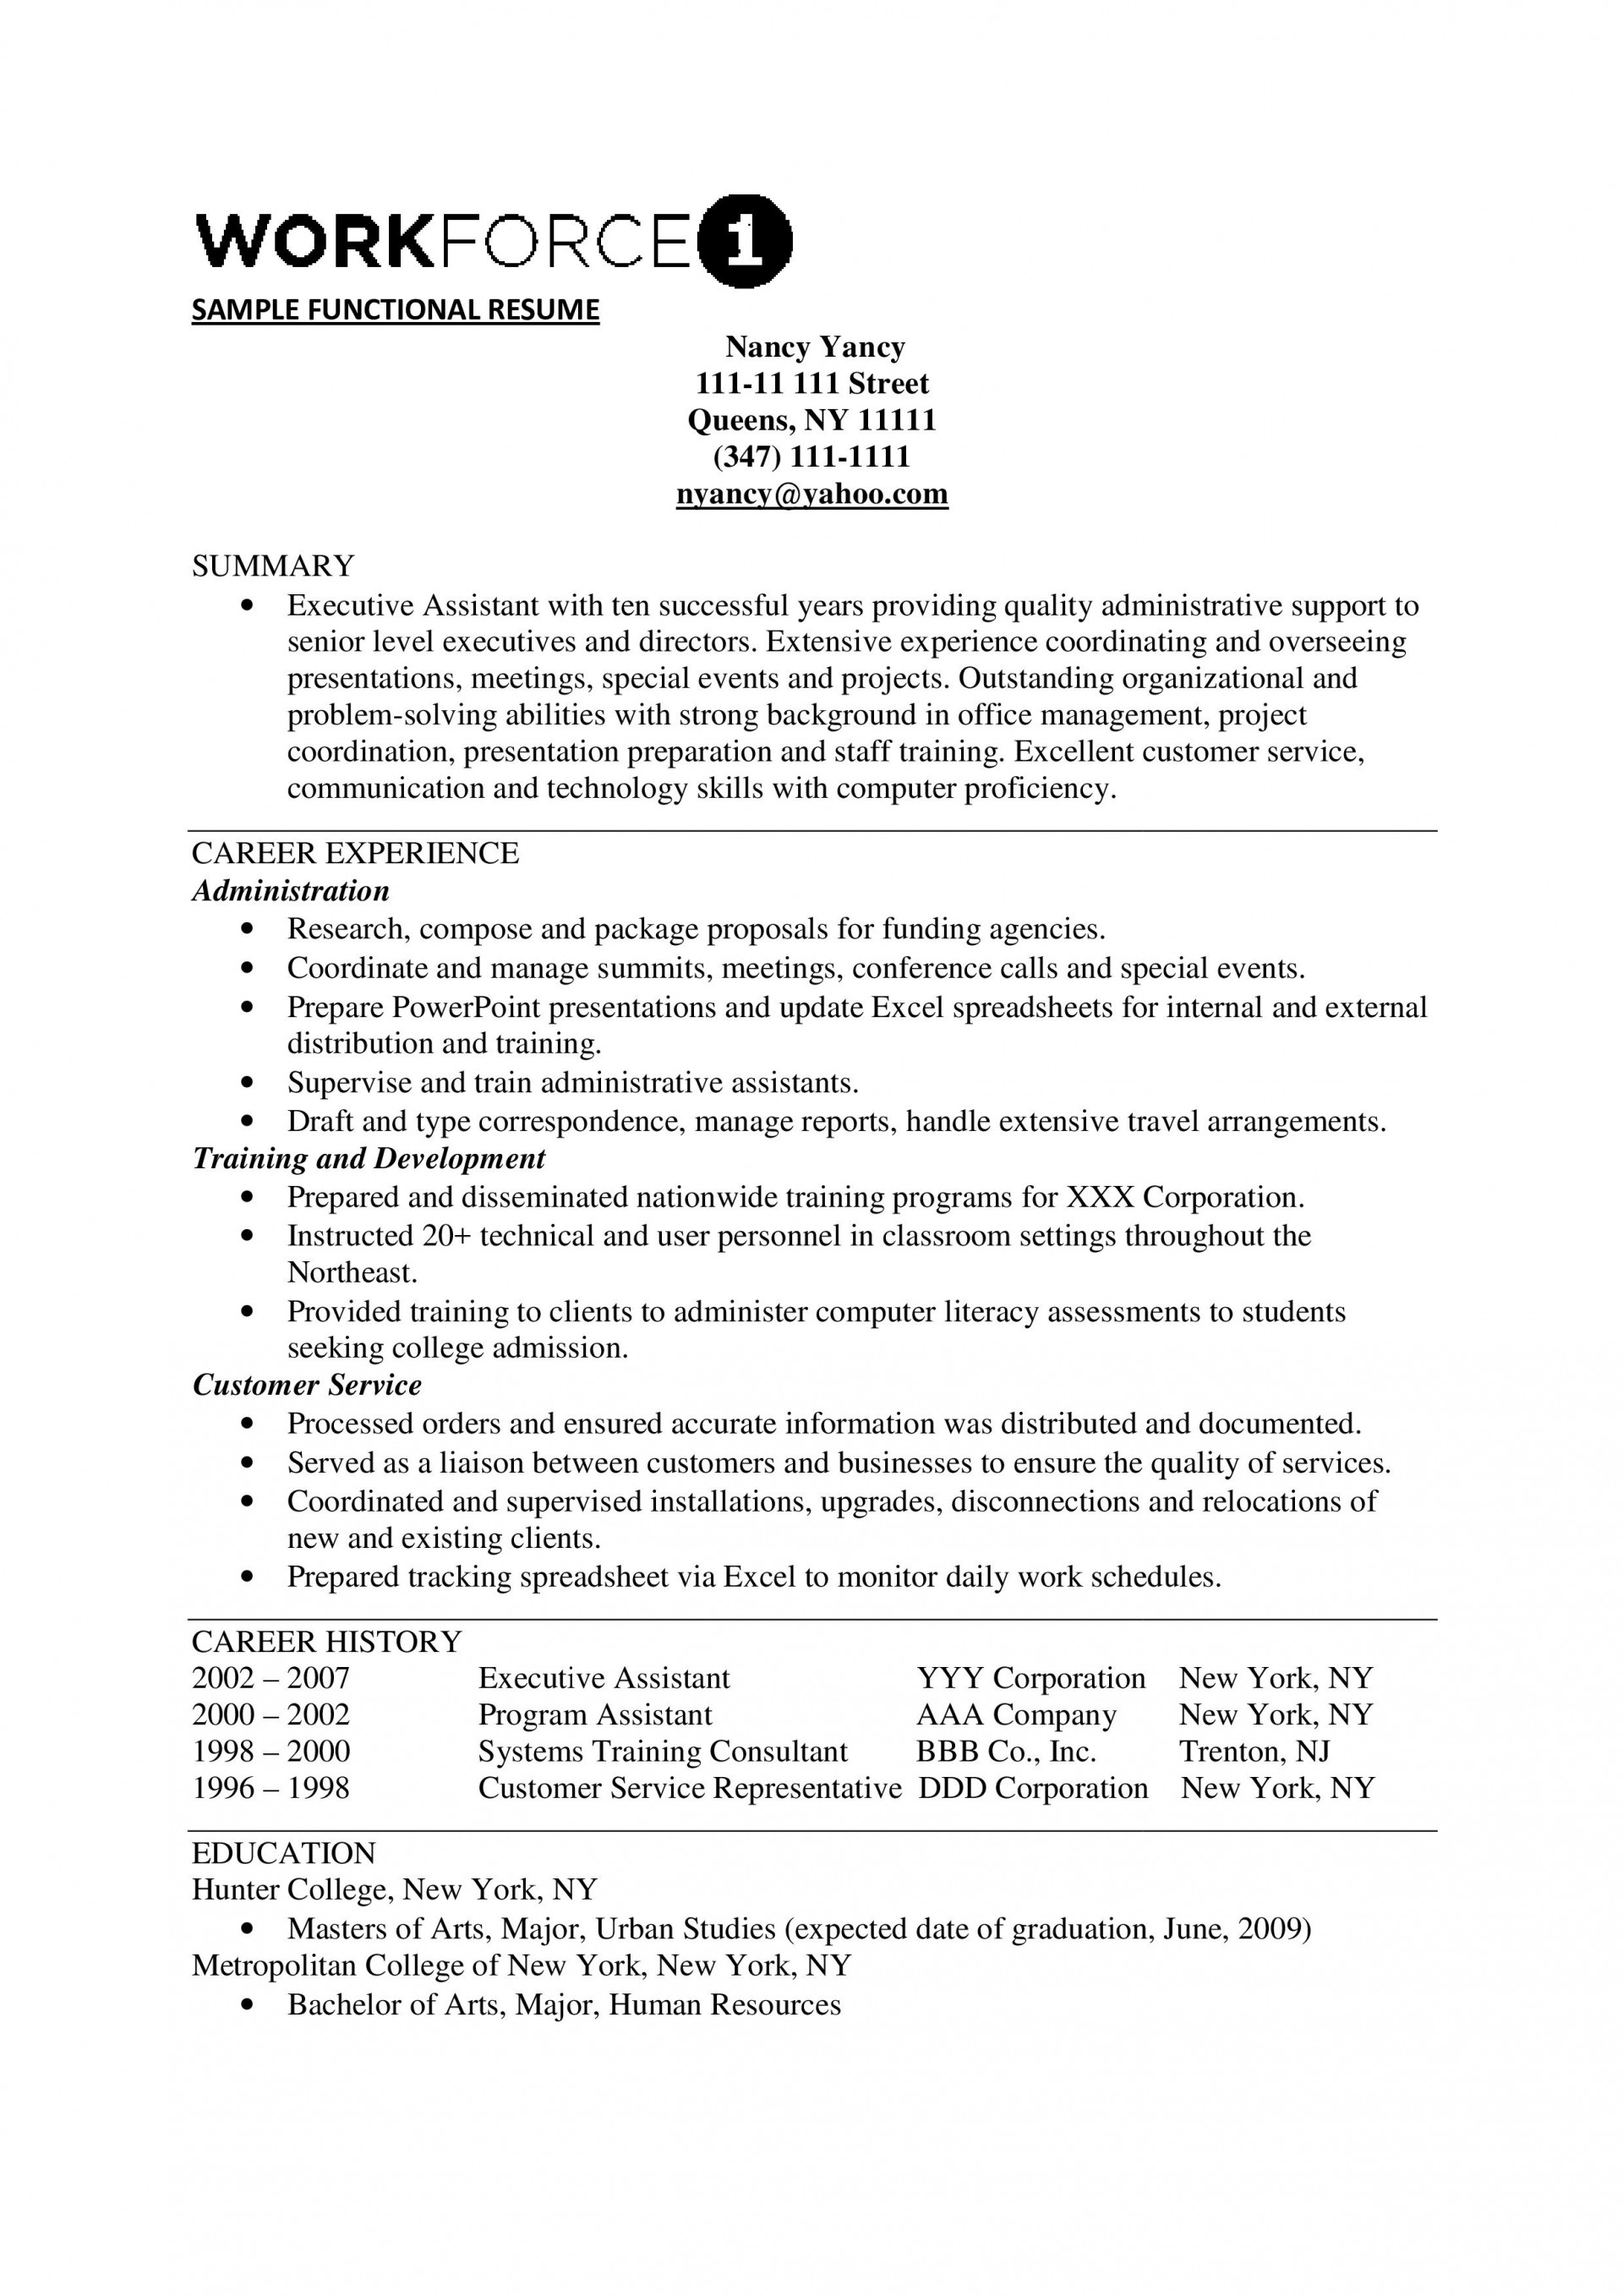 Functional Resume Template Free Addictionary